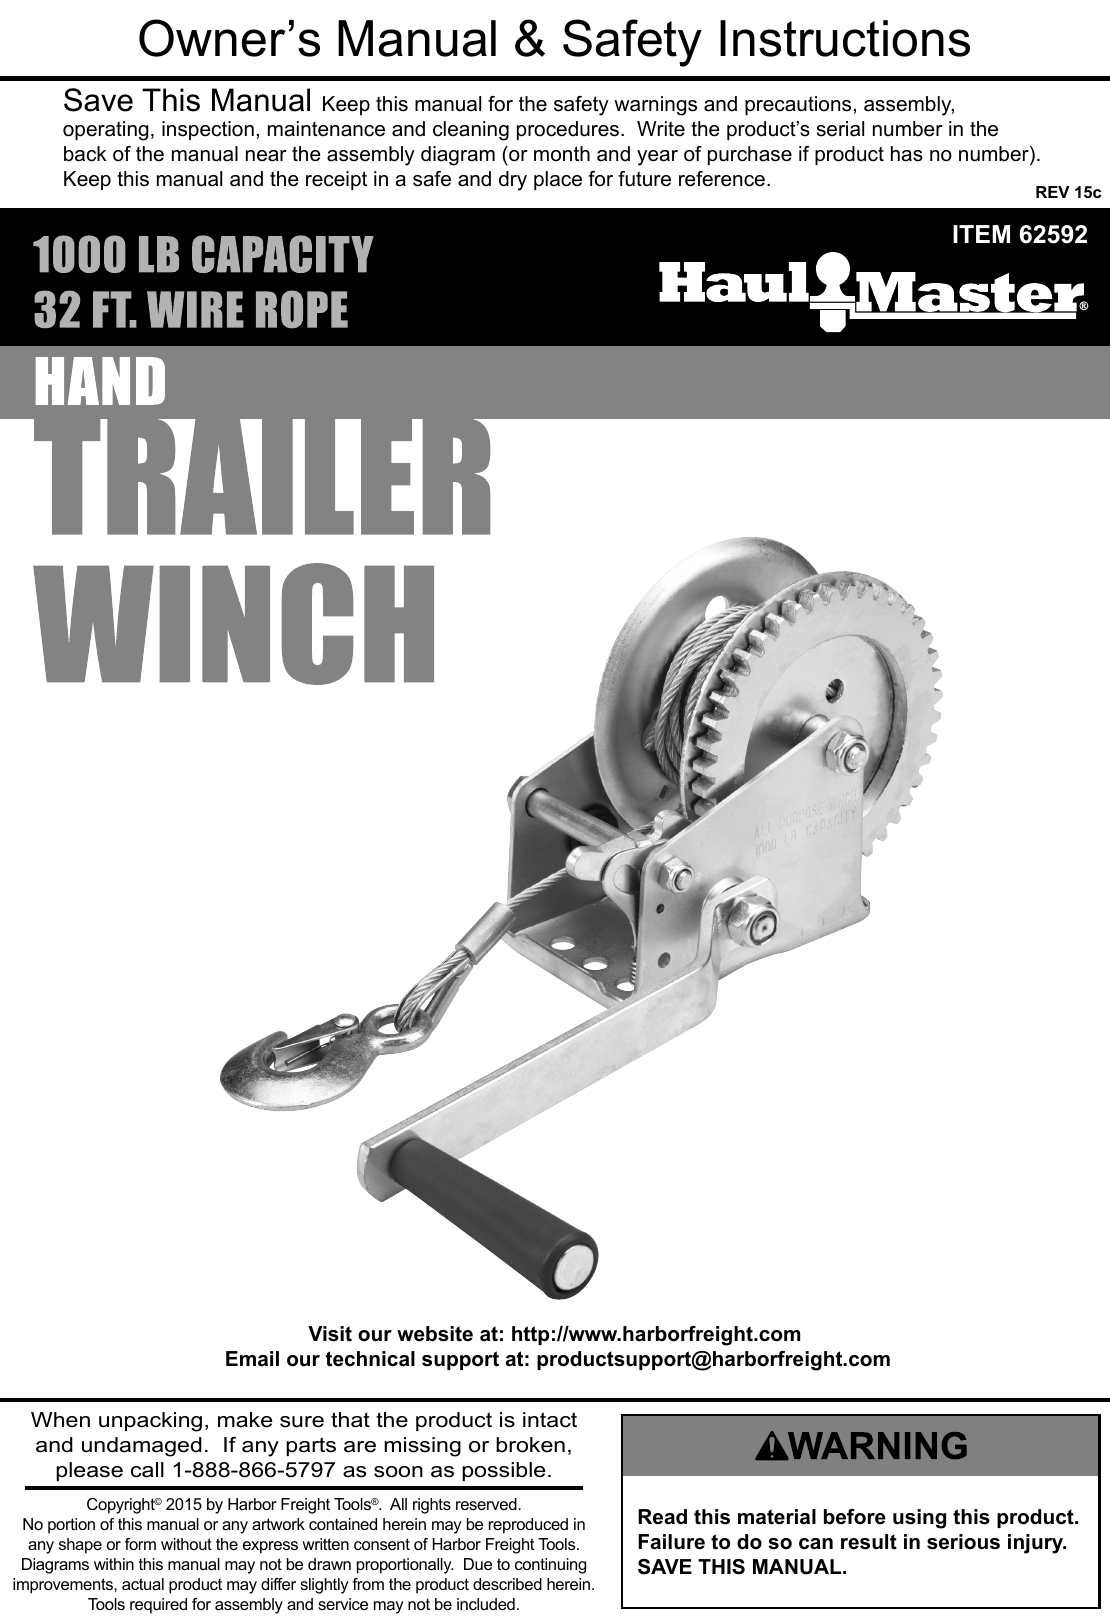 Manual For The 62592 1 2 Ton Capacity Hand Winch Further Harbor Freight Trailer On Wiring Kit Page Of 12